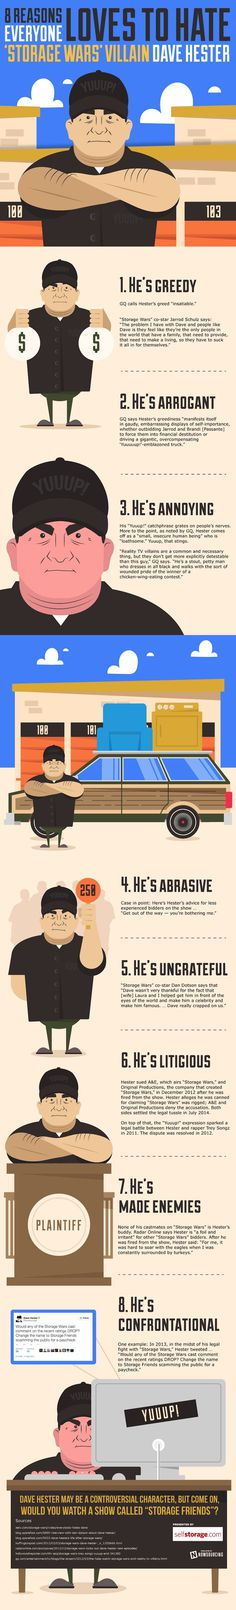 Dave Hester is a great reality television villain.  Learn why we love to hate his role on Storage Wars from this infographic!